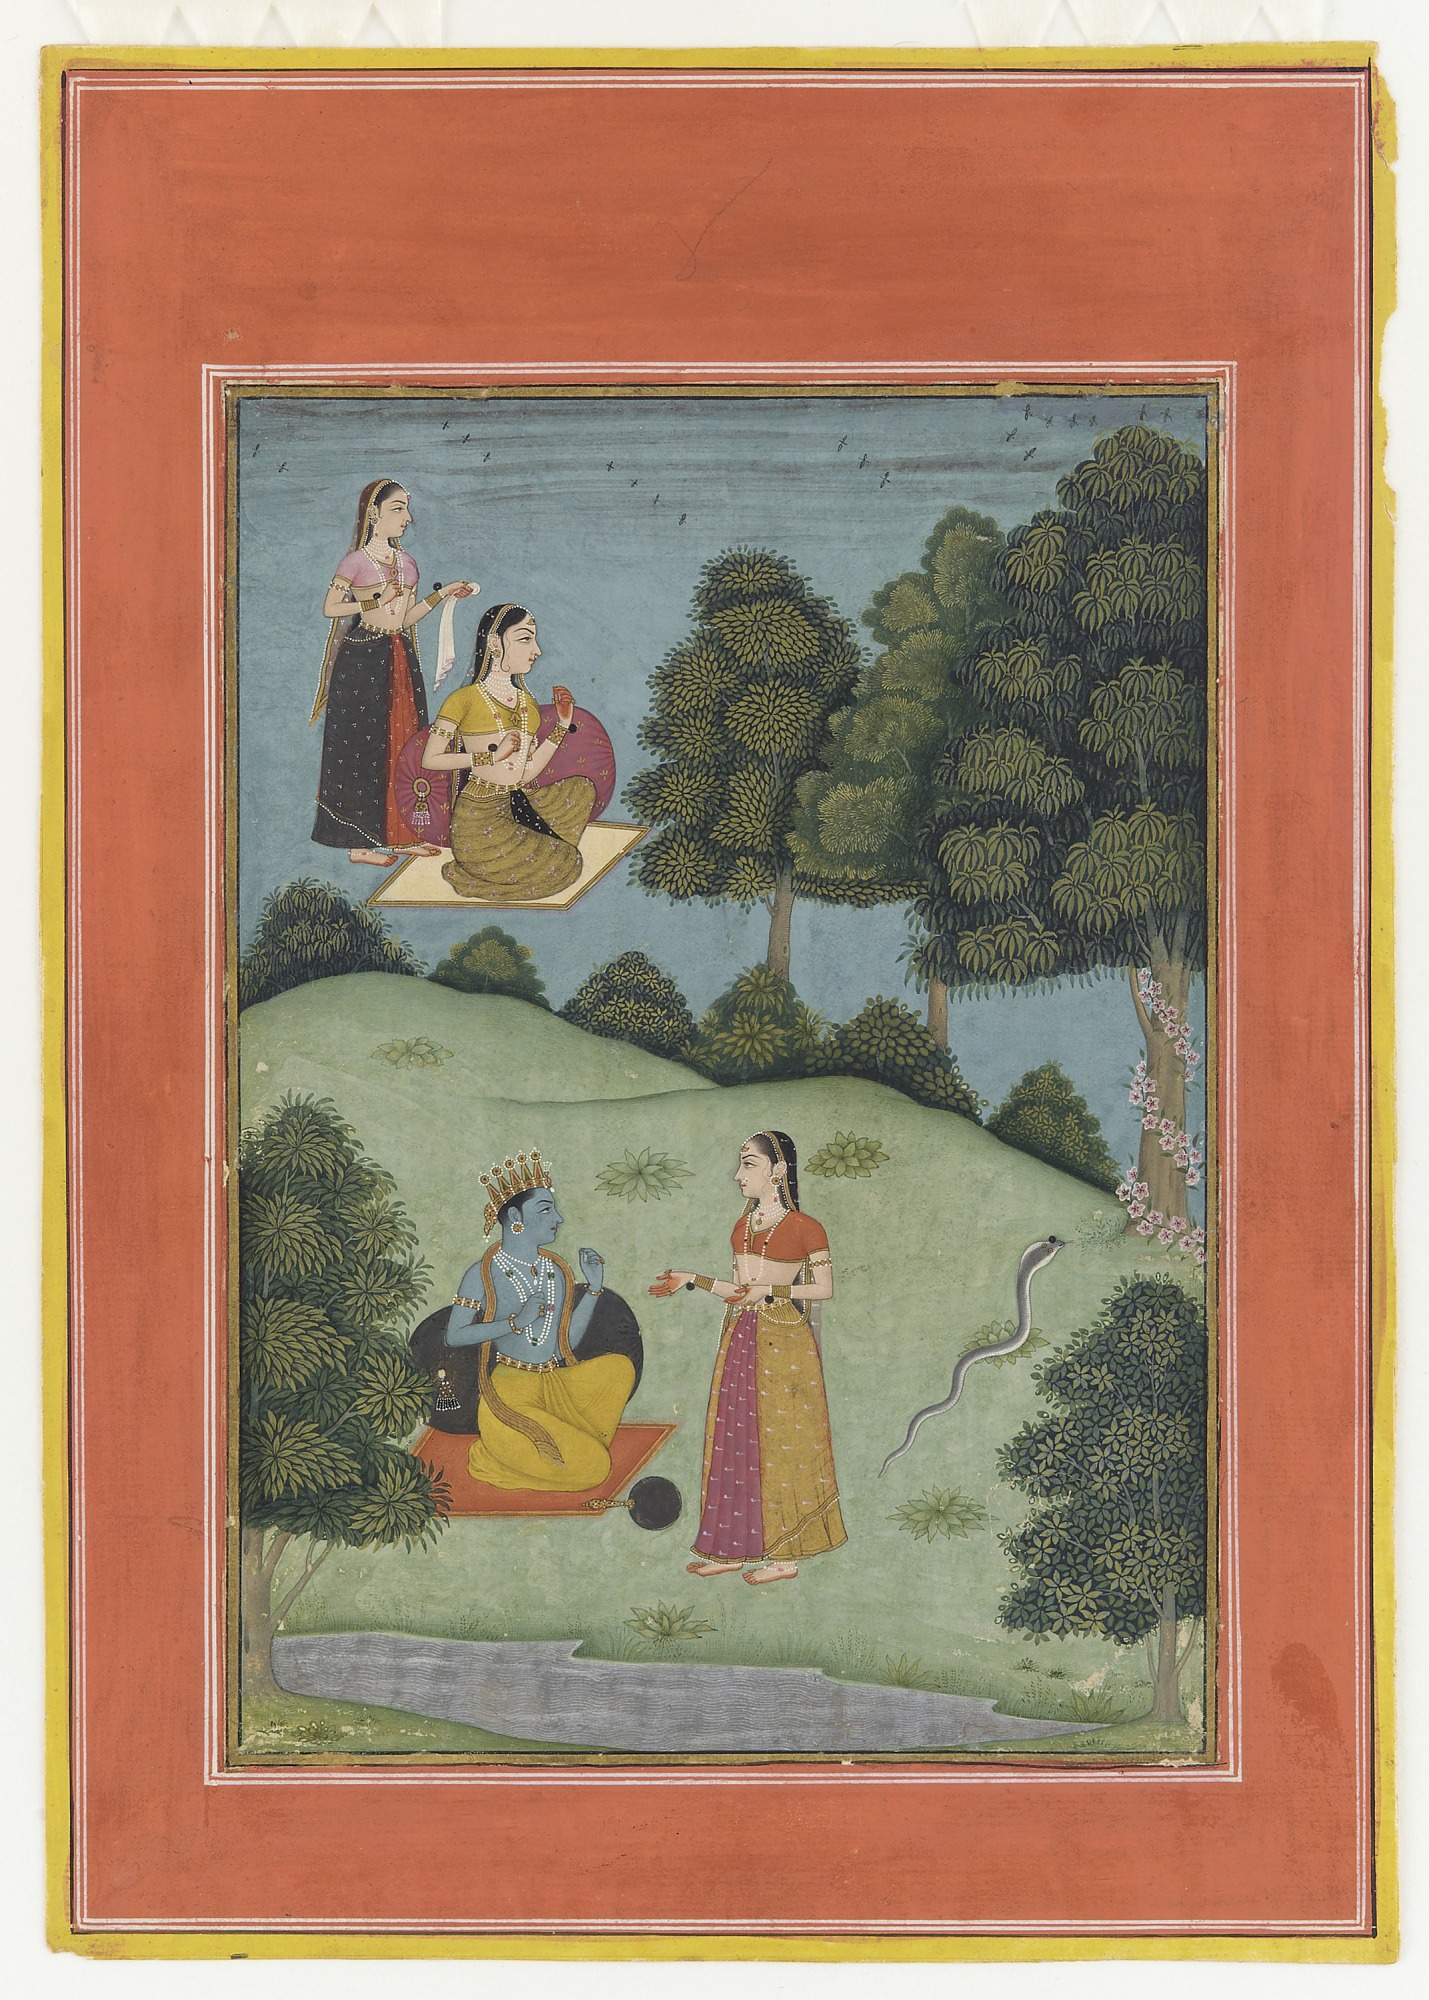 Krishna talking with a confidante of Radha from the Rasikapriya